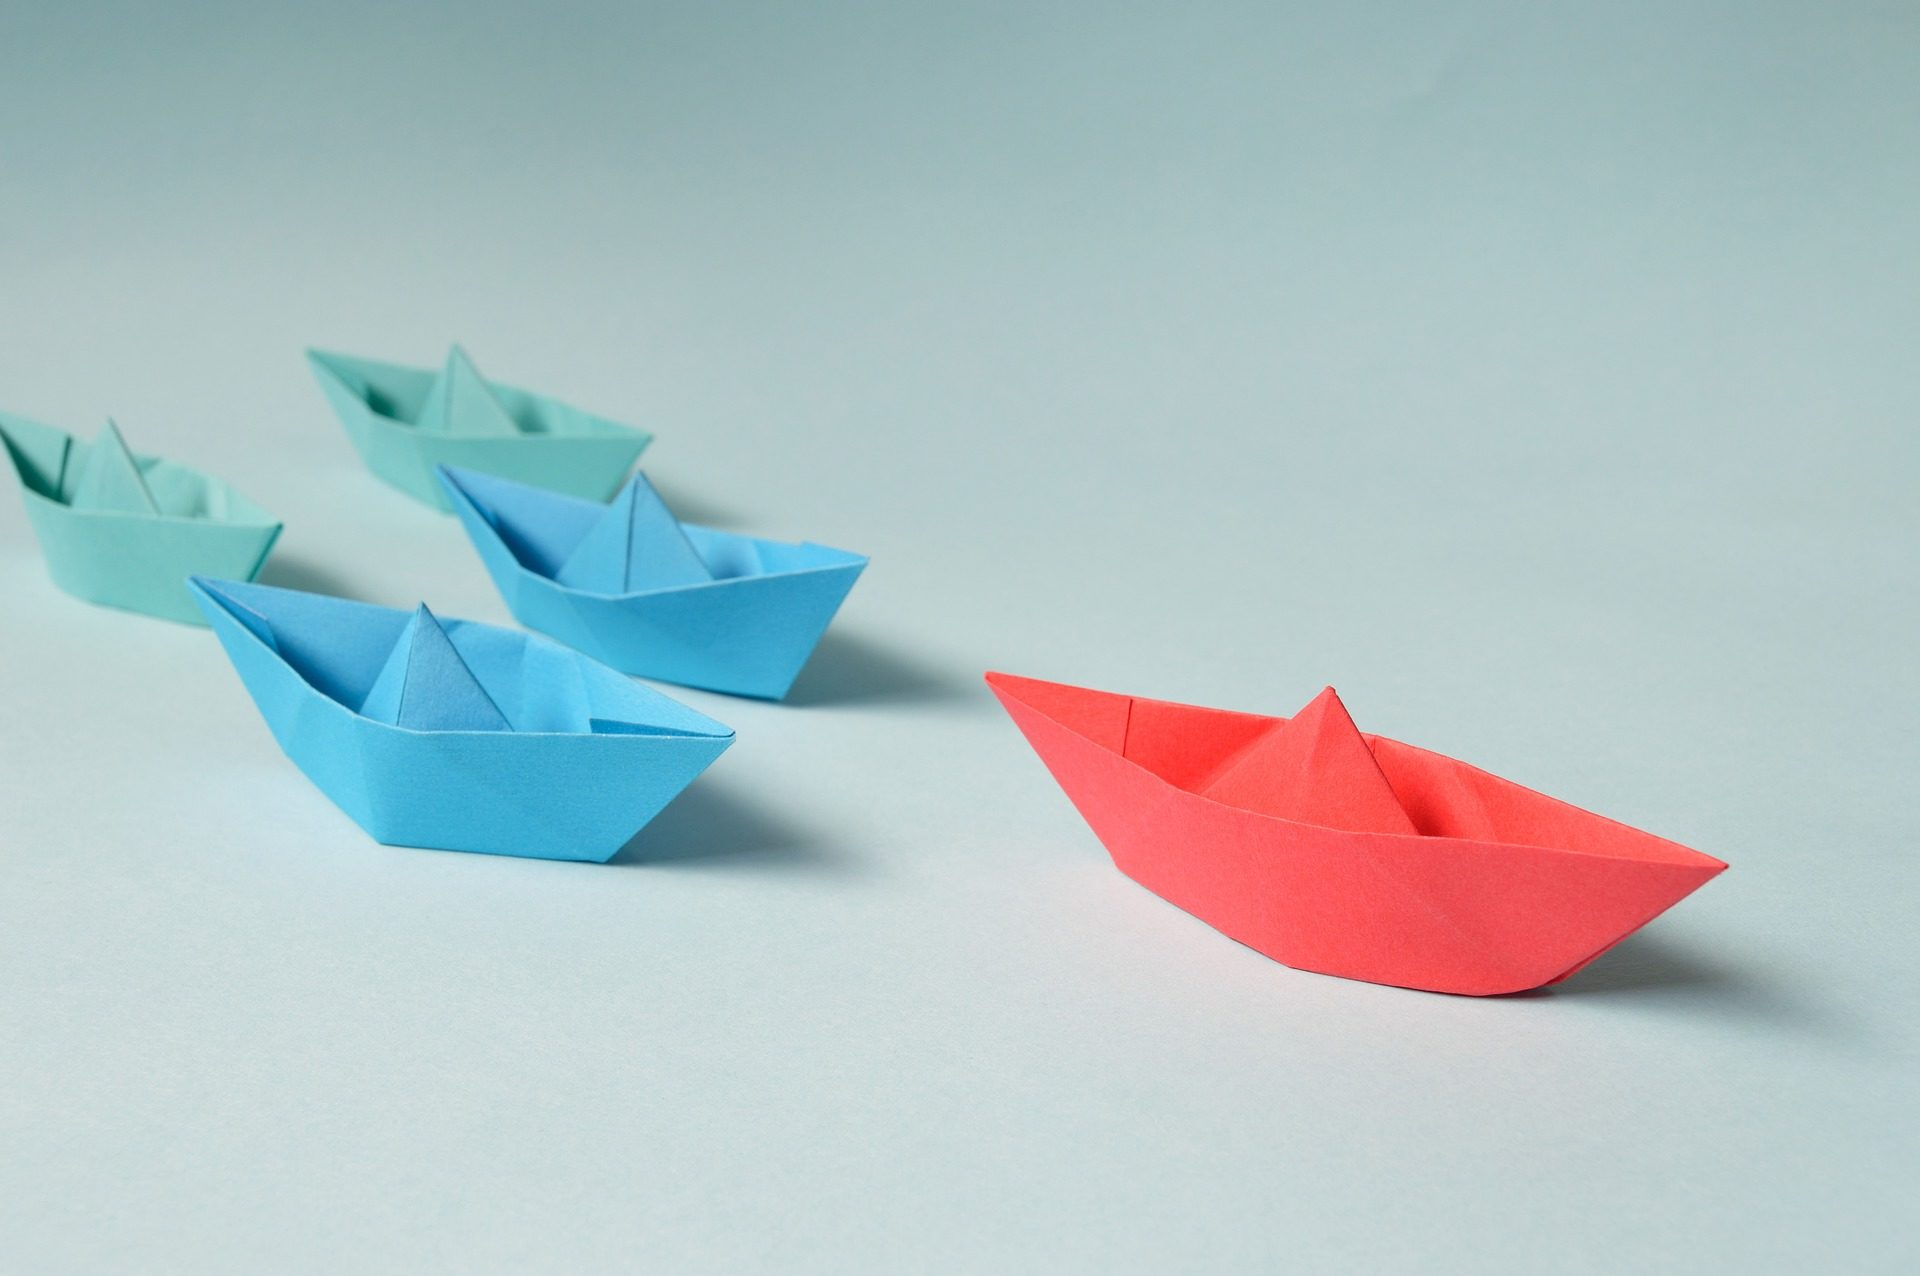 A red origami boat leads several blue boats across the photo